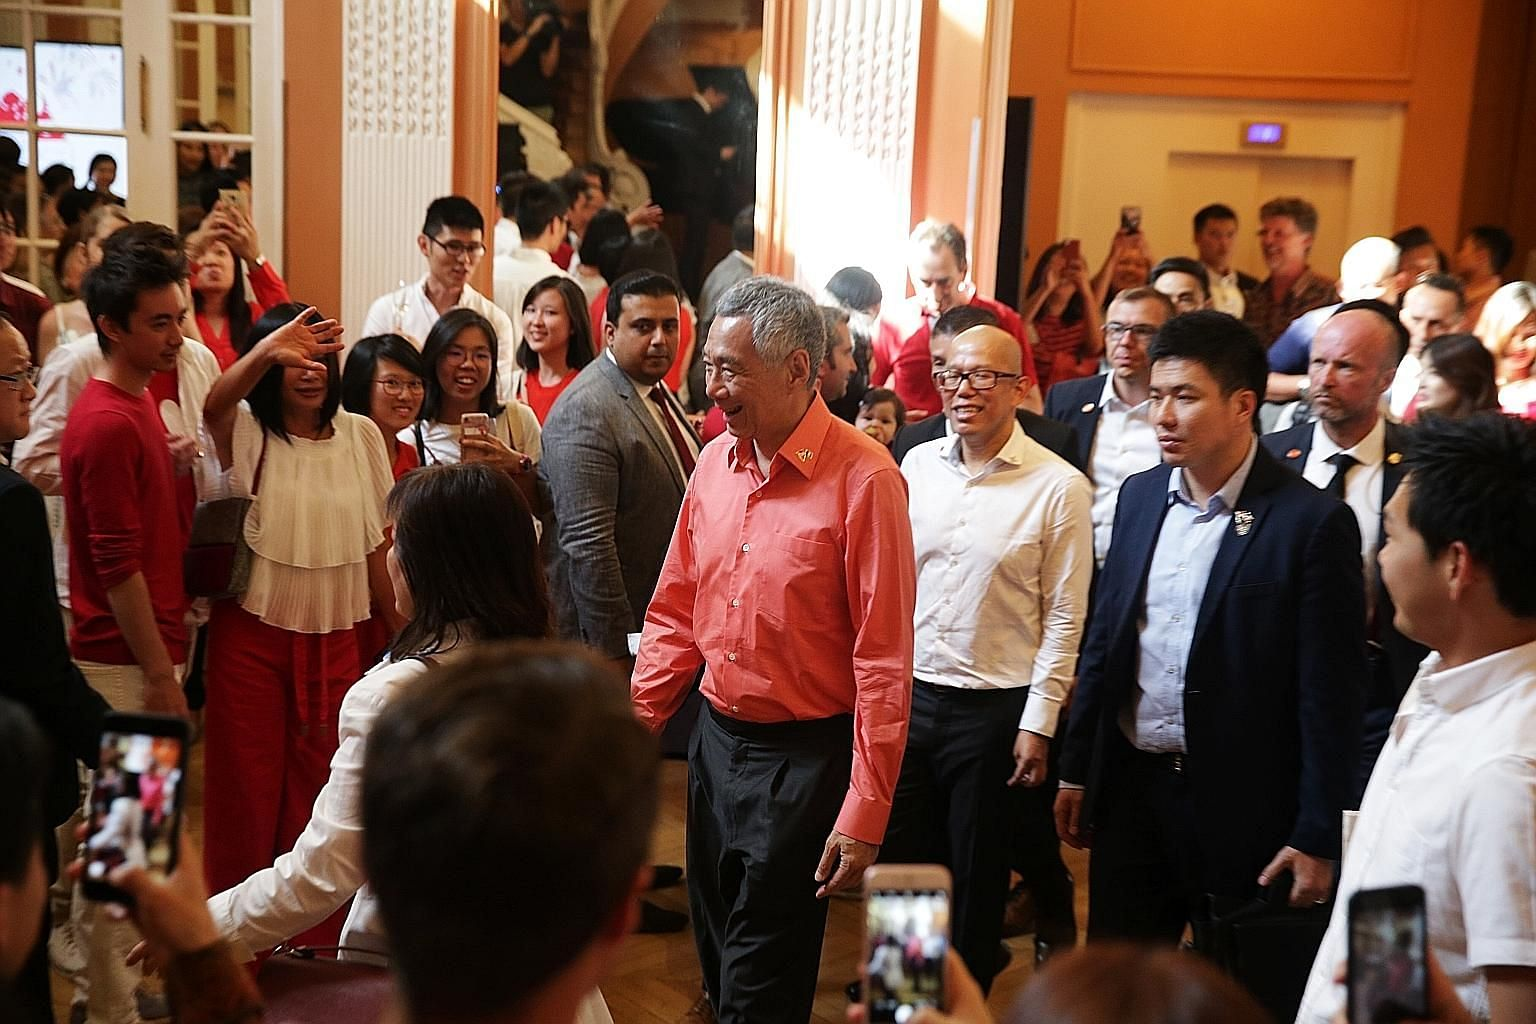 Prime Minister Lee Hsien Loong meeting the Singaporean community in France at the Hotel des Arts et Metiers in Paris on Saturday night.